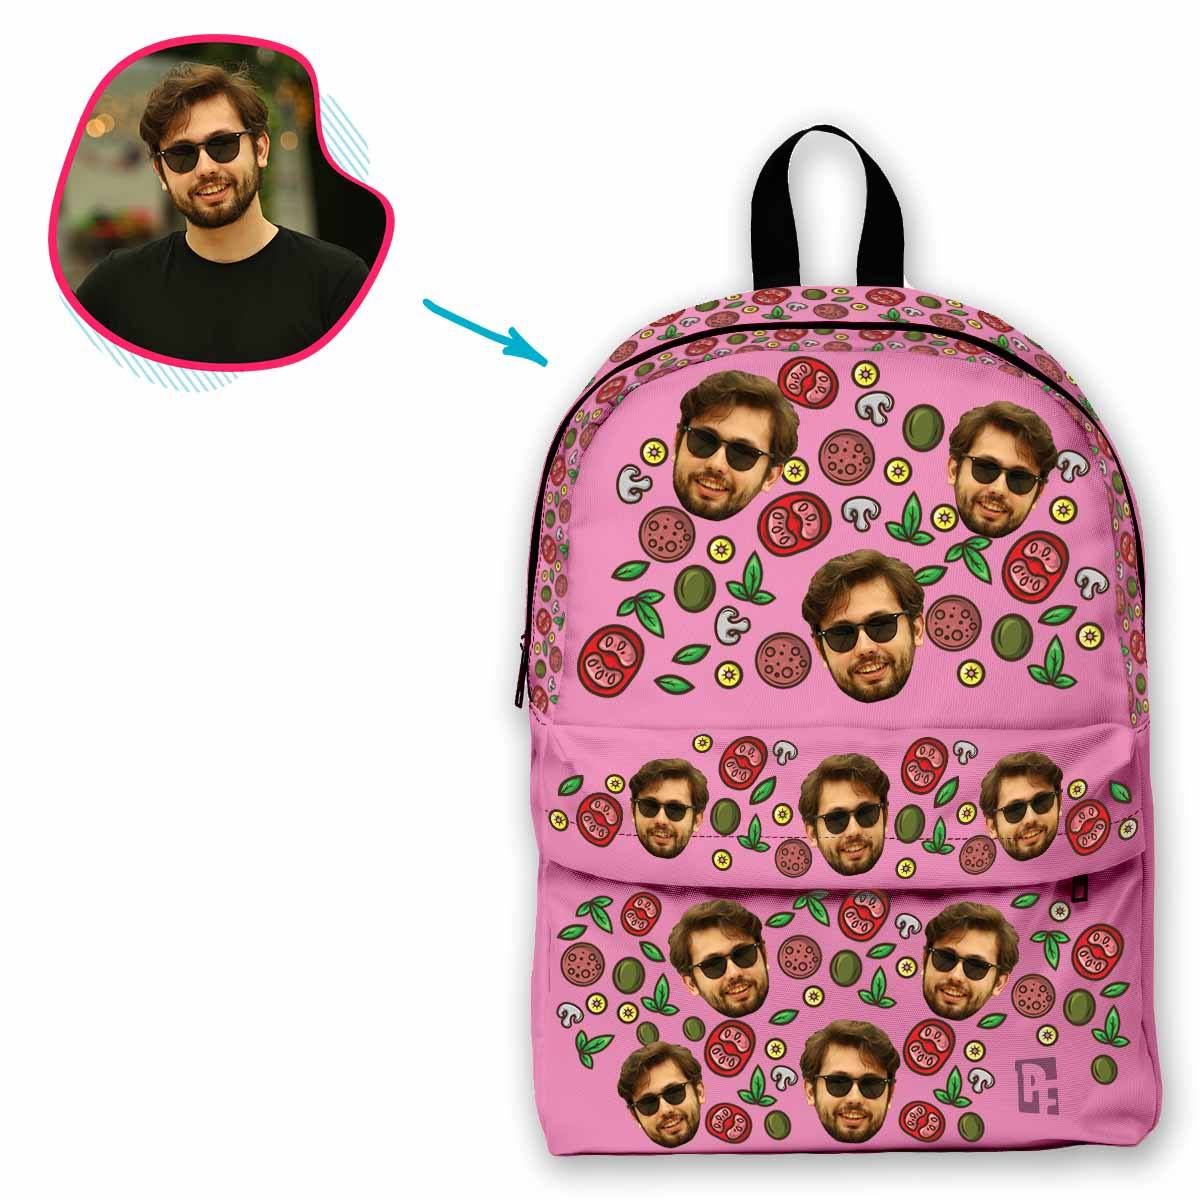 pink Pizza classic backpack personalized with photo of face printed on it